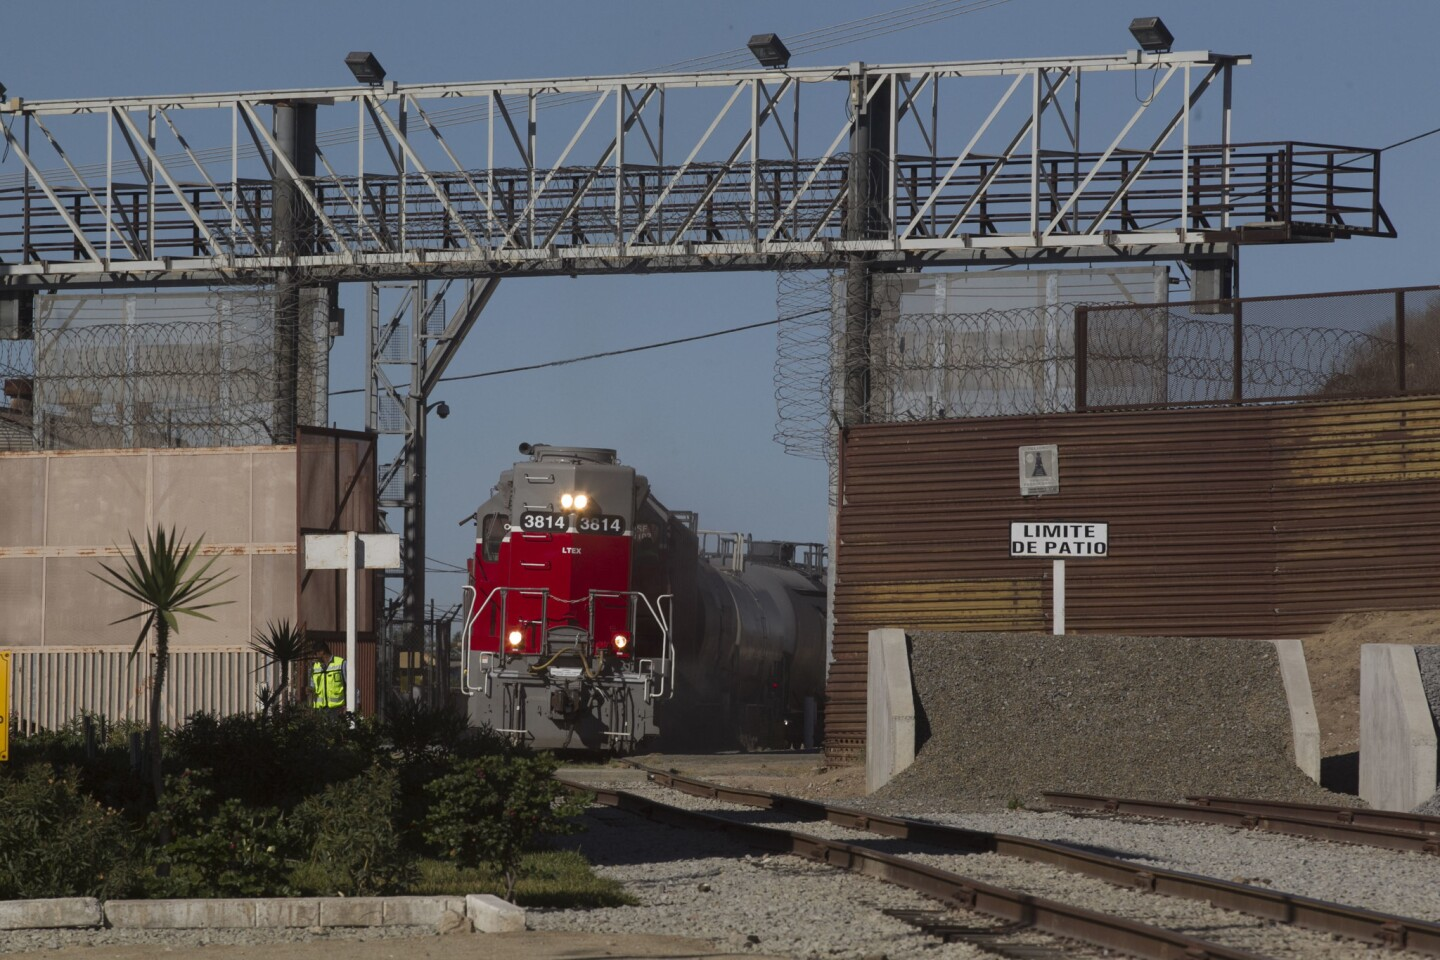 A locomotive from the Baja California Railroad heads south back in to Mexico after picking up 18 rail cars full of freight for delivery to regional clients in the Tijuana and Tecate region.